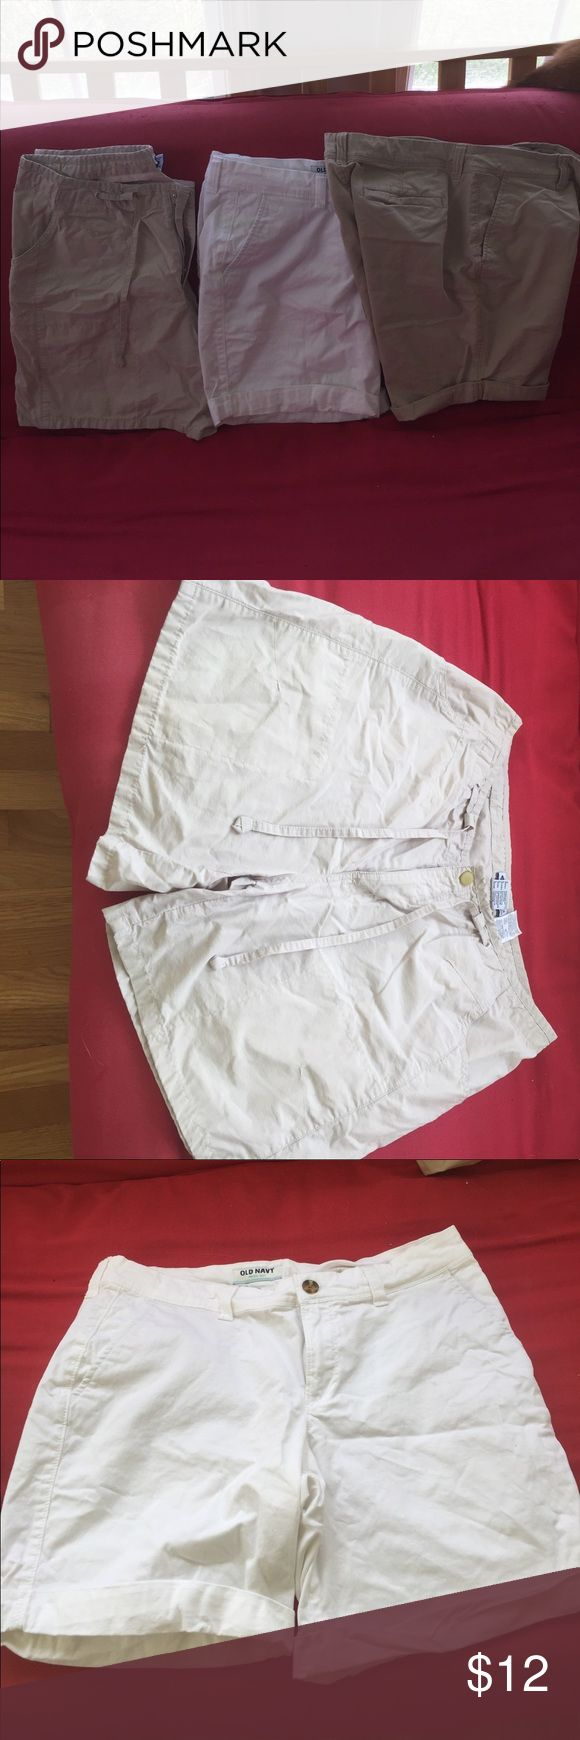 3 pairs cotton shorts 2 khaki and 1 white. Old navy and 1 Columbia Sportswear. All excellent condition. No stains or signs of wear. Shorts